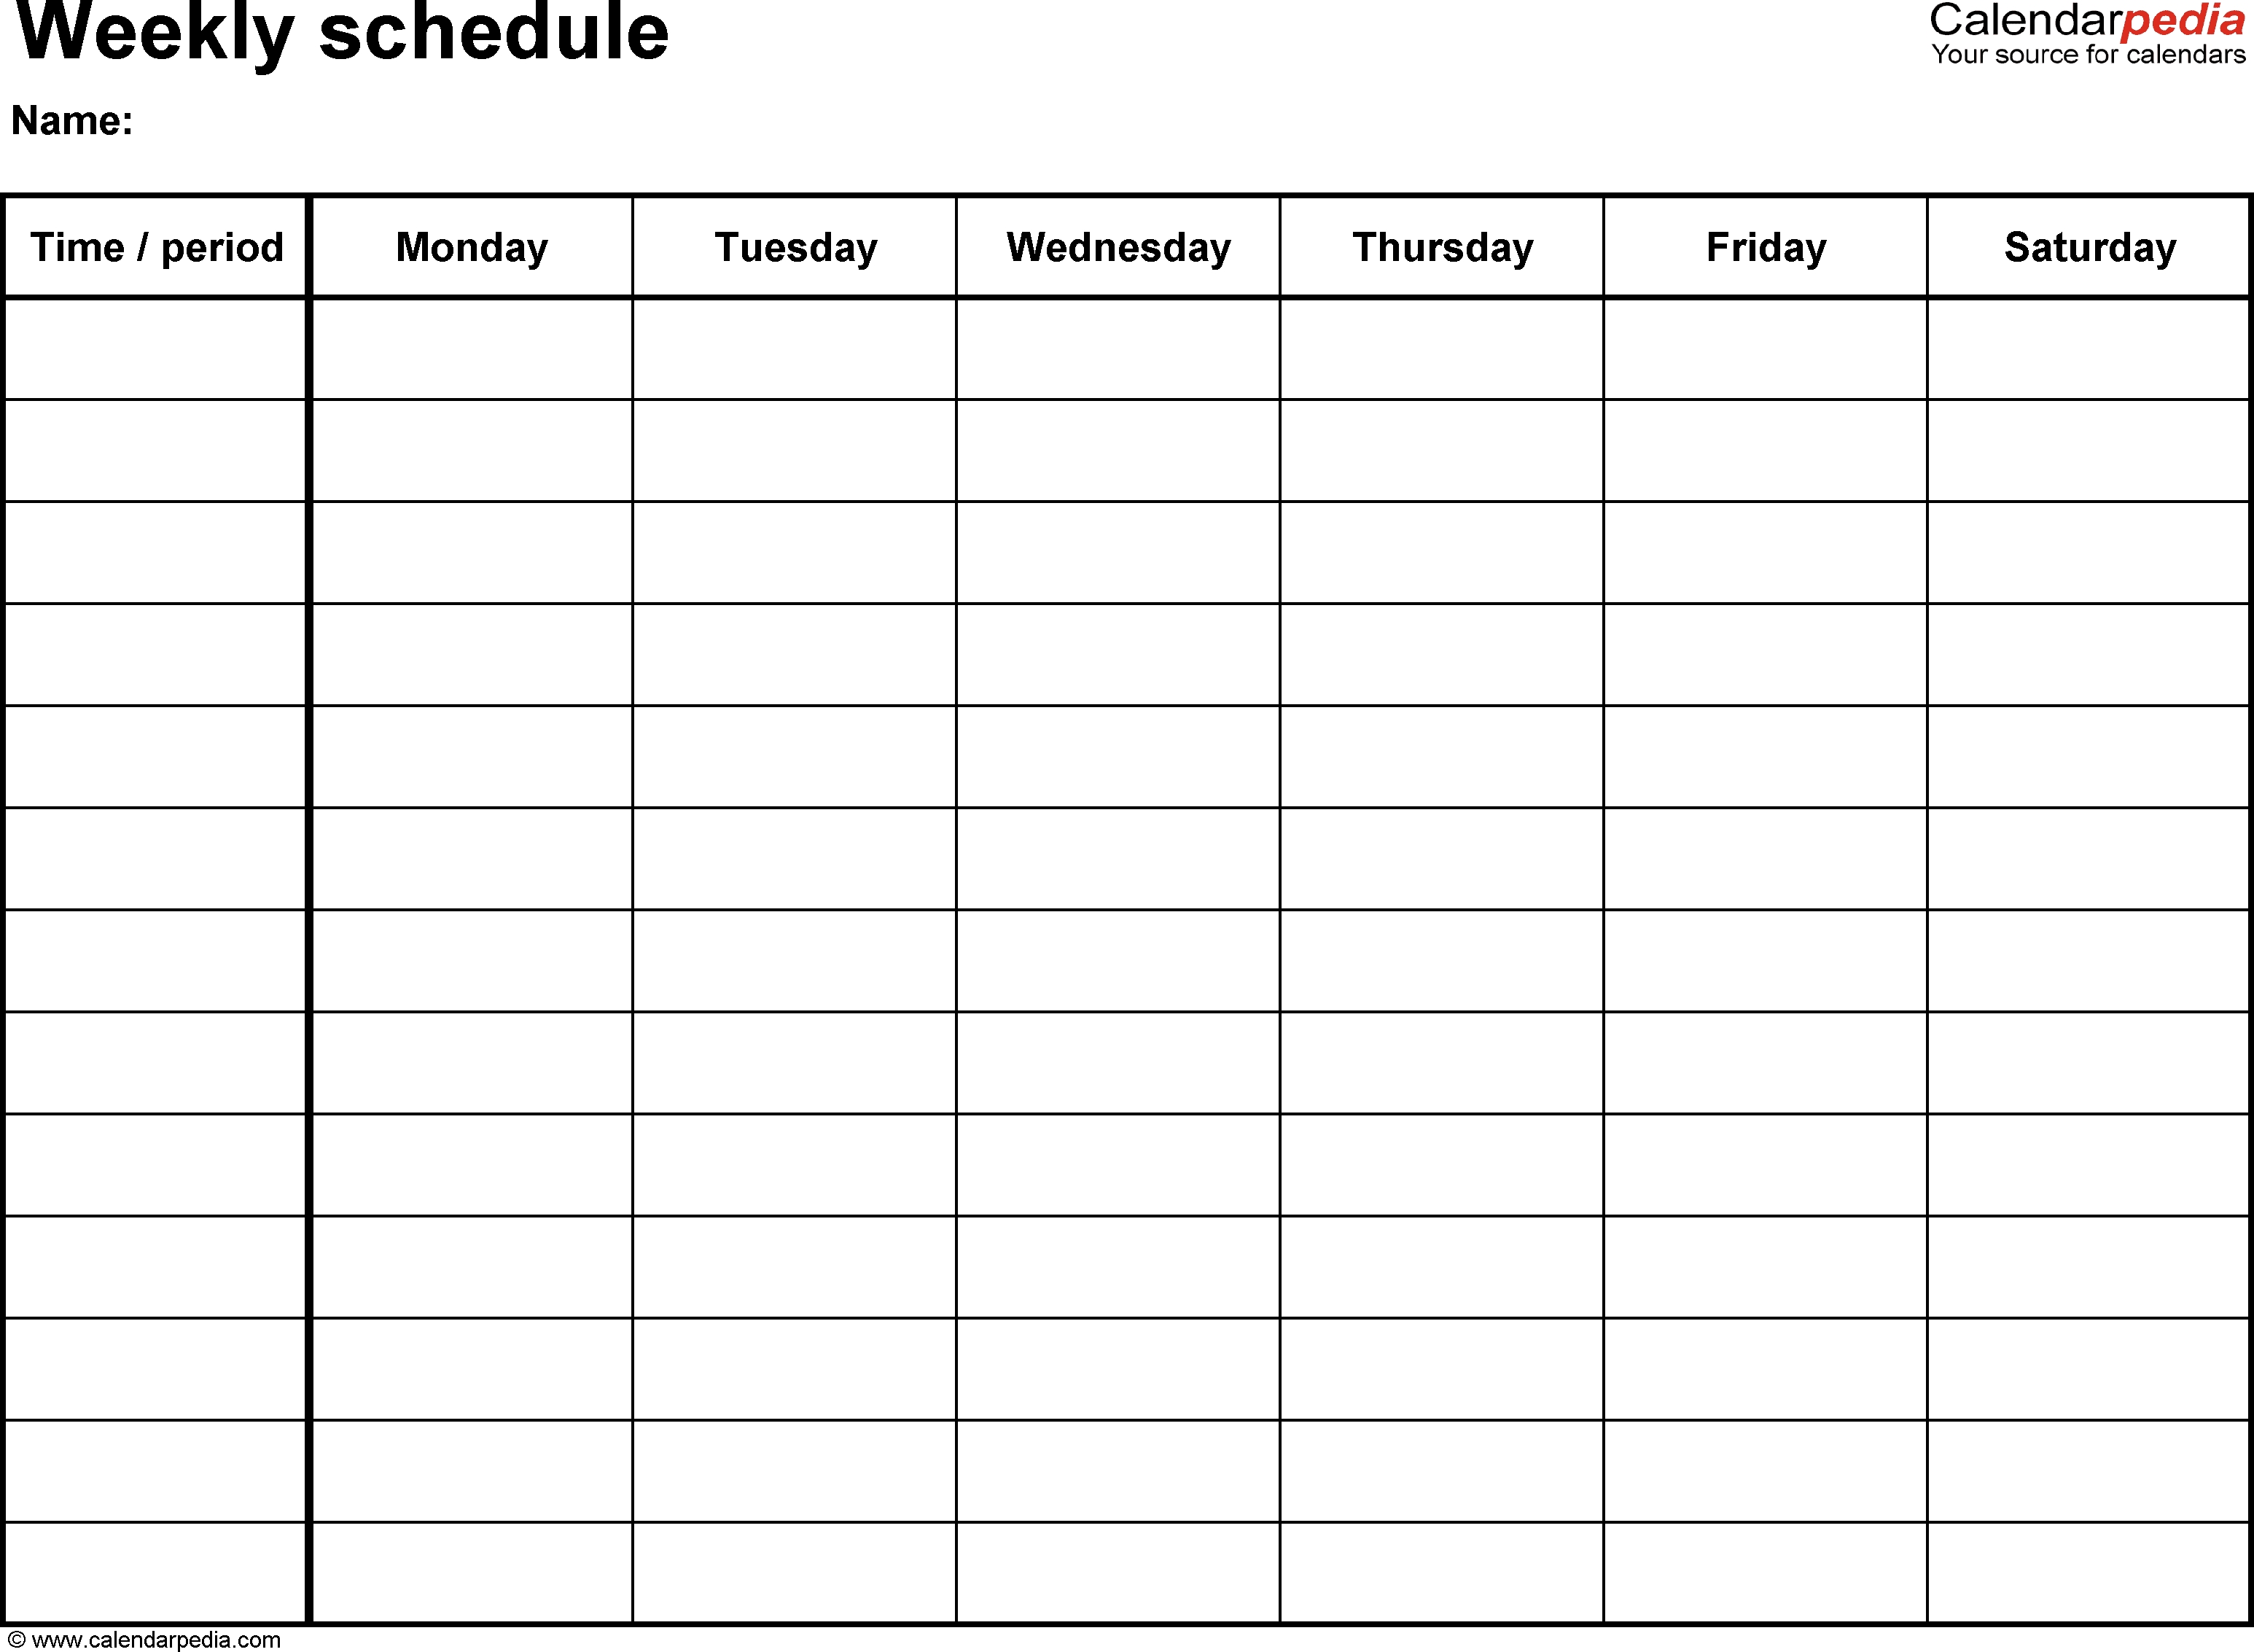 Free Weekly Schedule Templates For Word - 18 Templates  7 Day Calendar Template Fillable